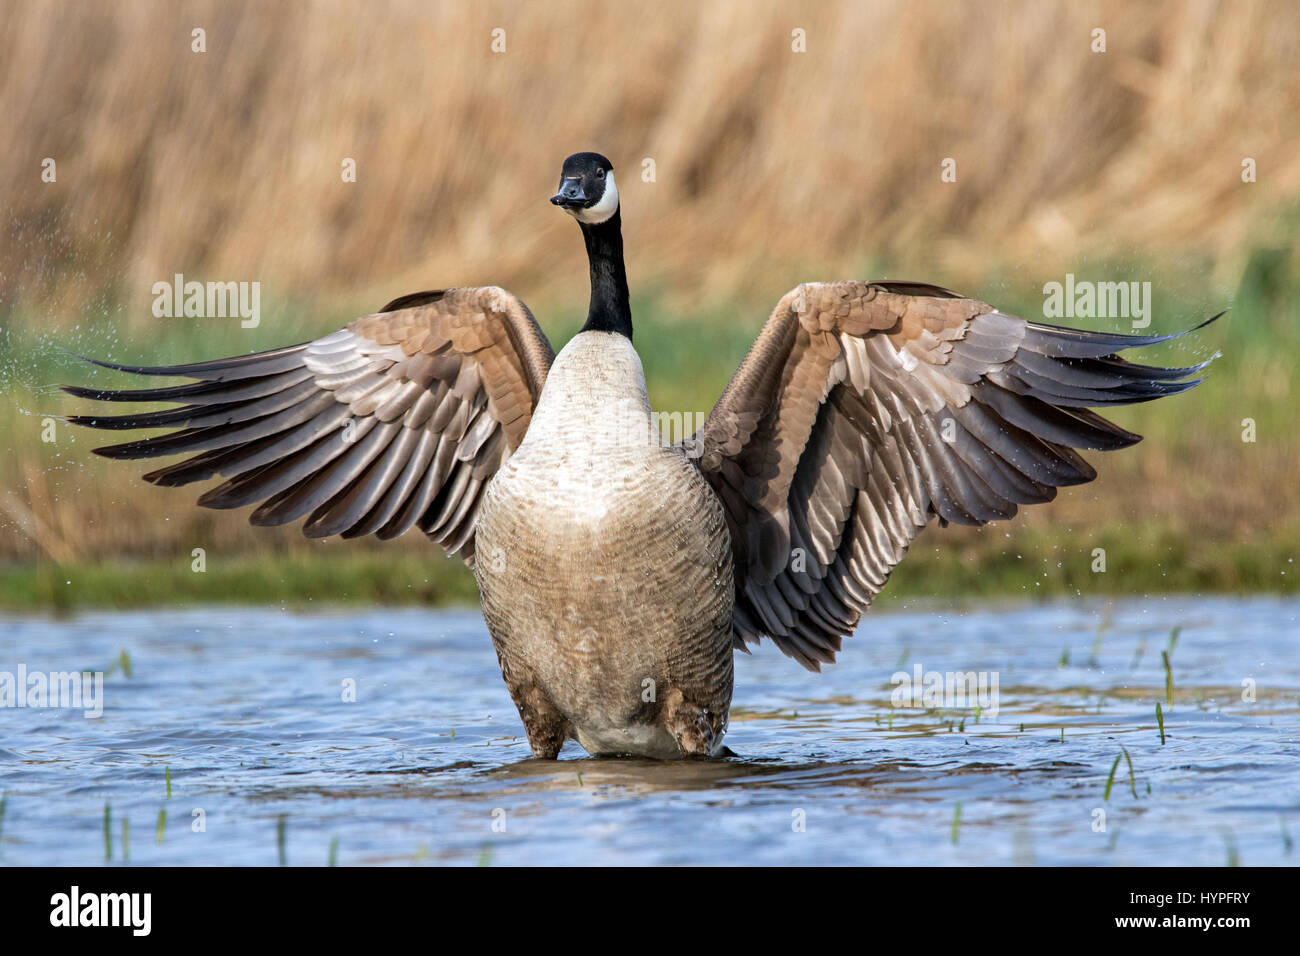 Canada goose (Branta canadensis) flapping wings in pond - Stock Image